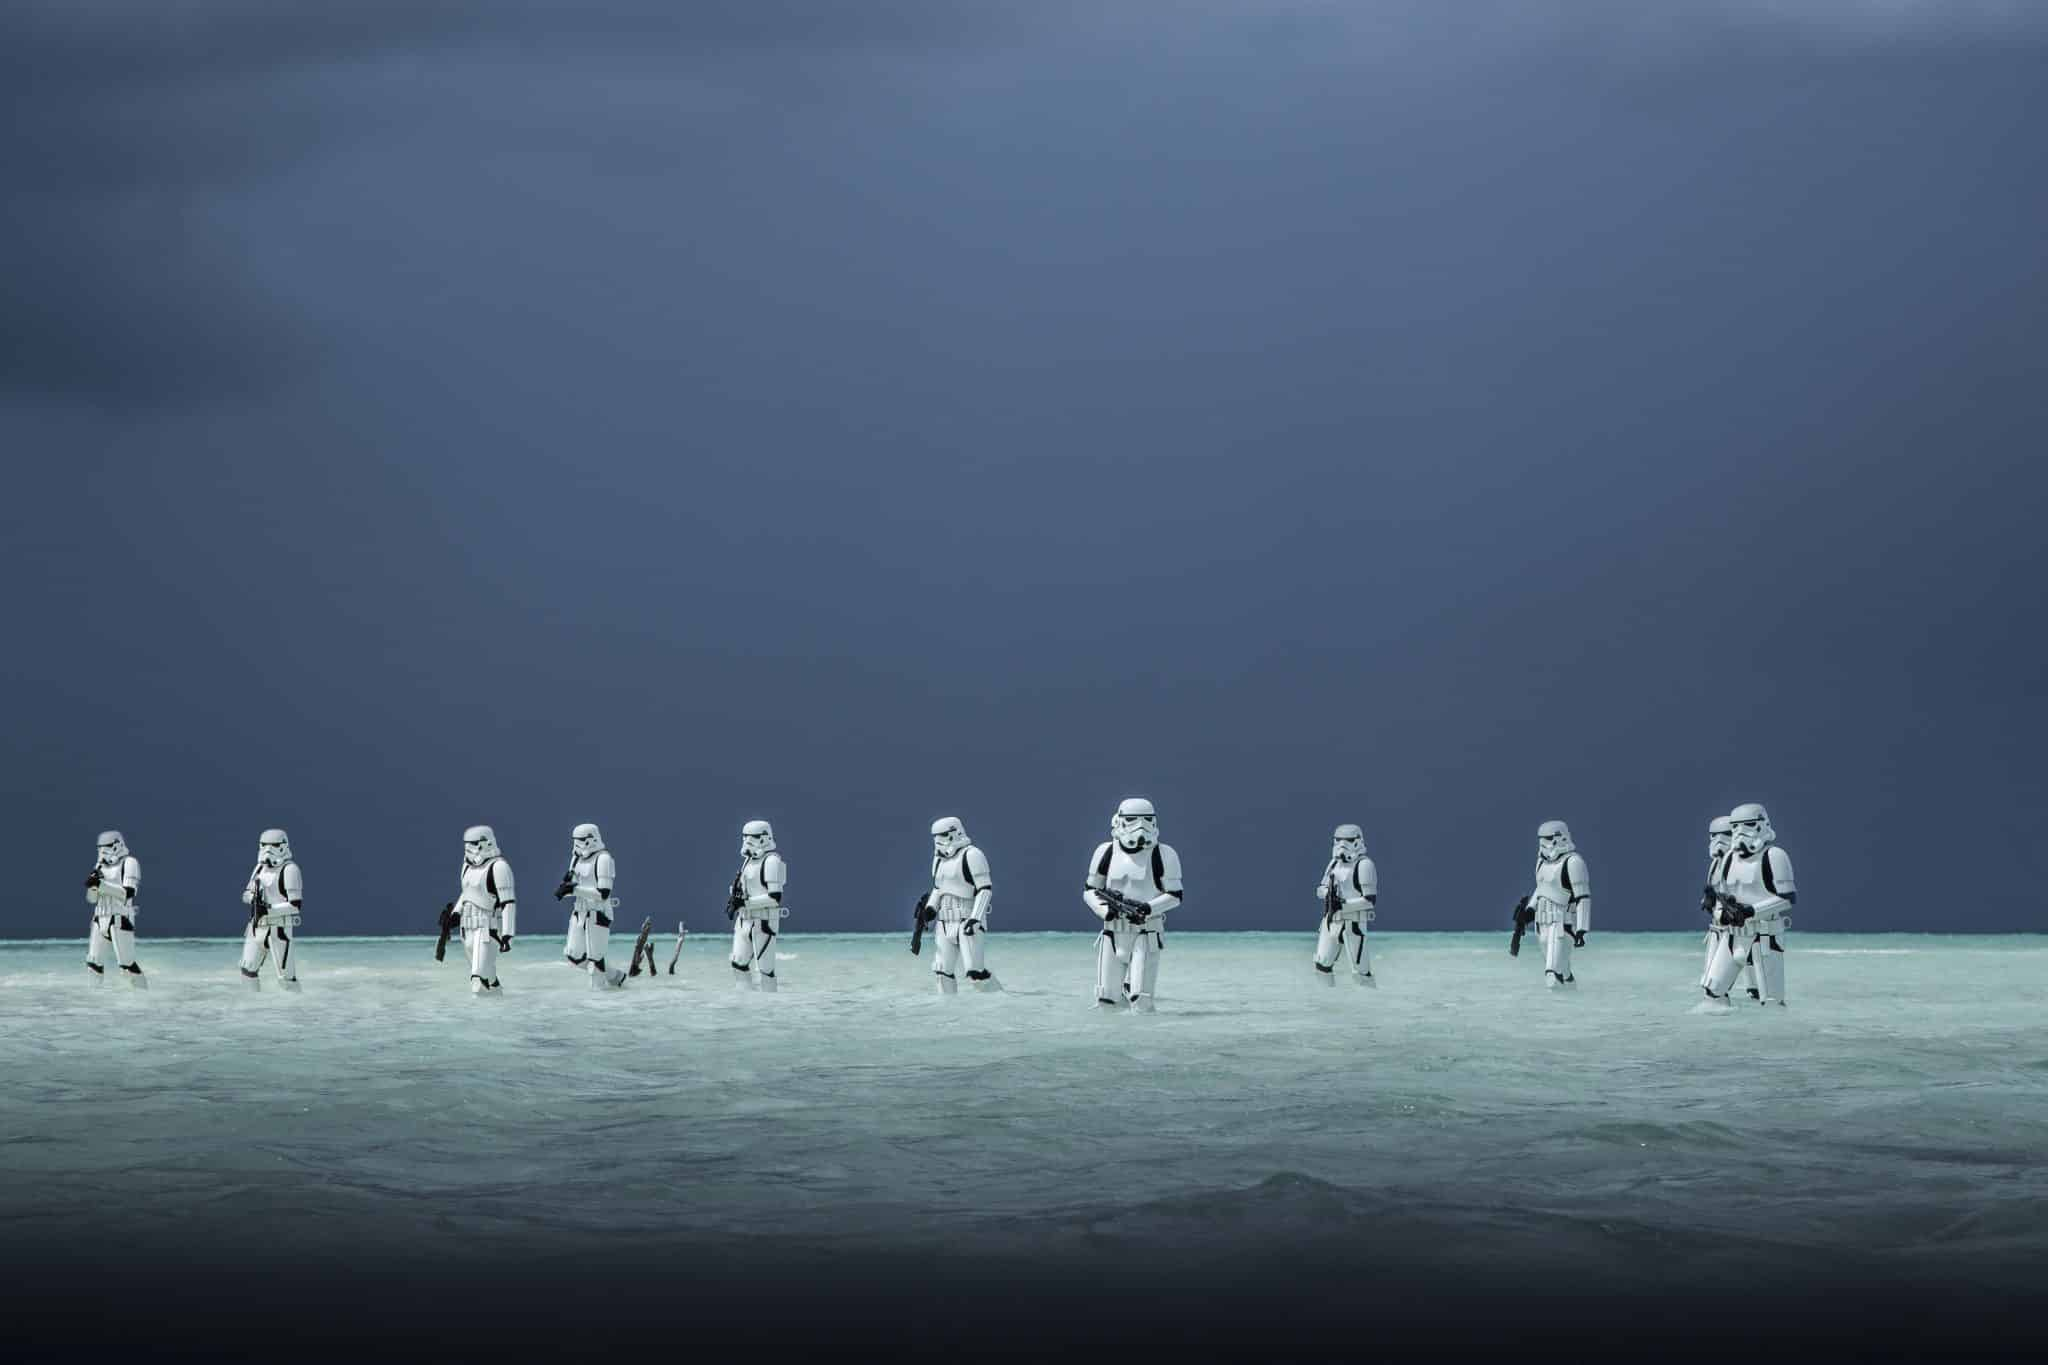 Rogue One: A Star Wars Story NEW Trailer! #RogueOne | ThisNThatwithOlivia.com